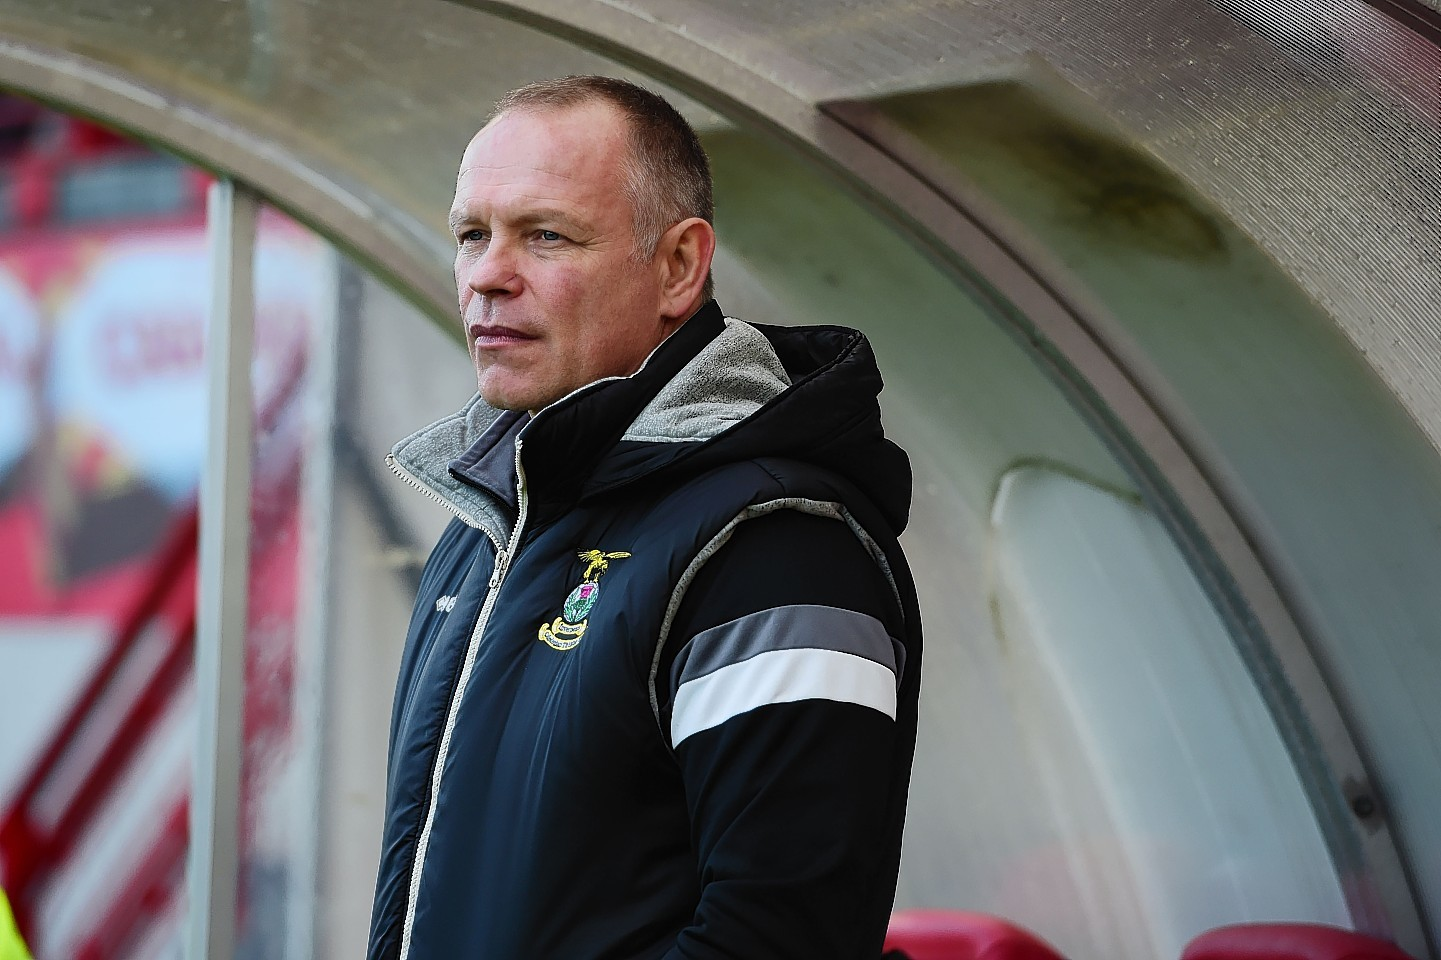 Caley Thistle boss John Hughes has voiced his concerns about those running Scottish football